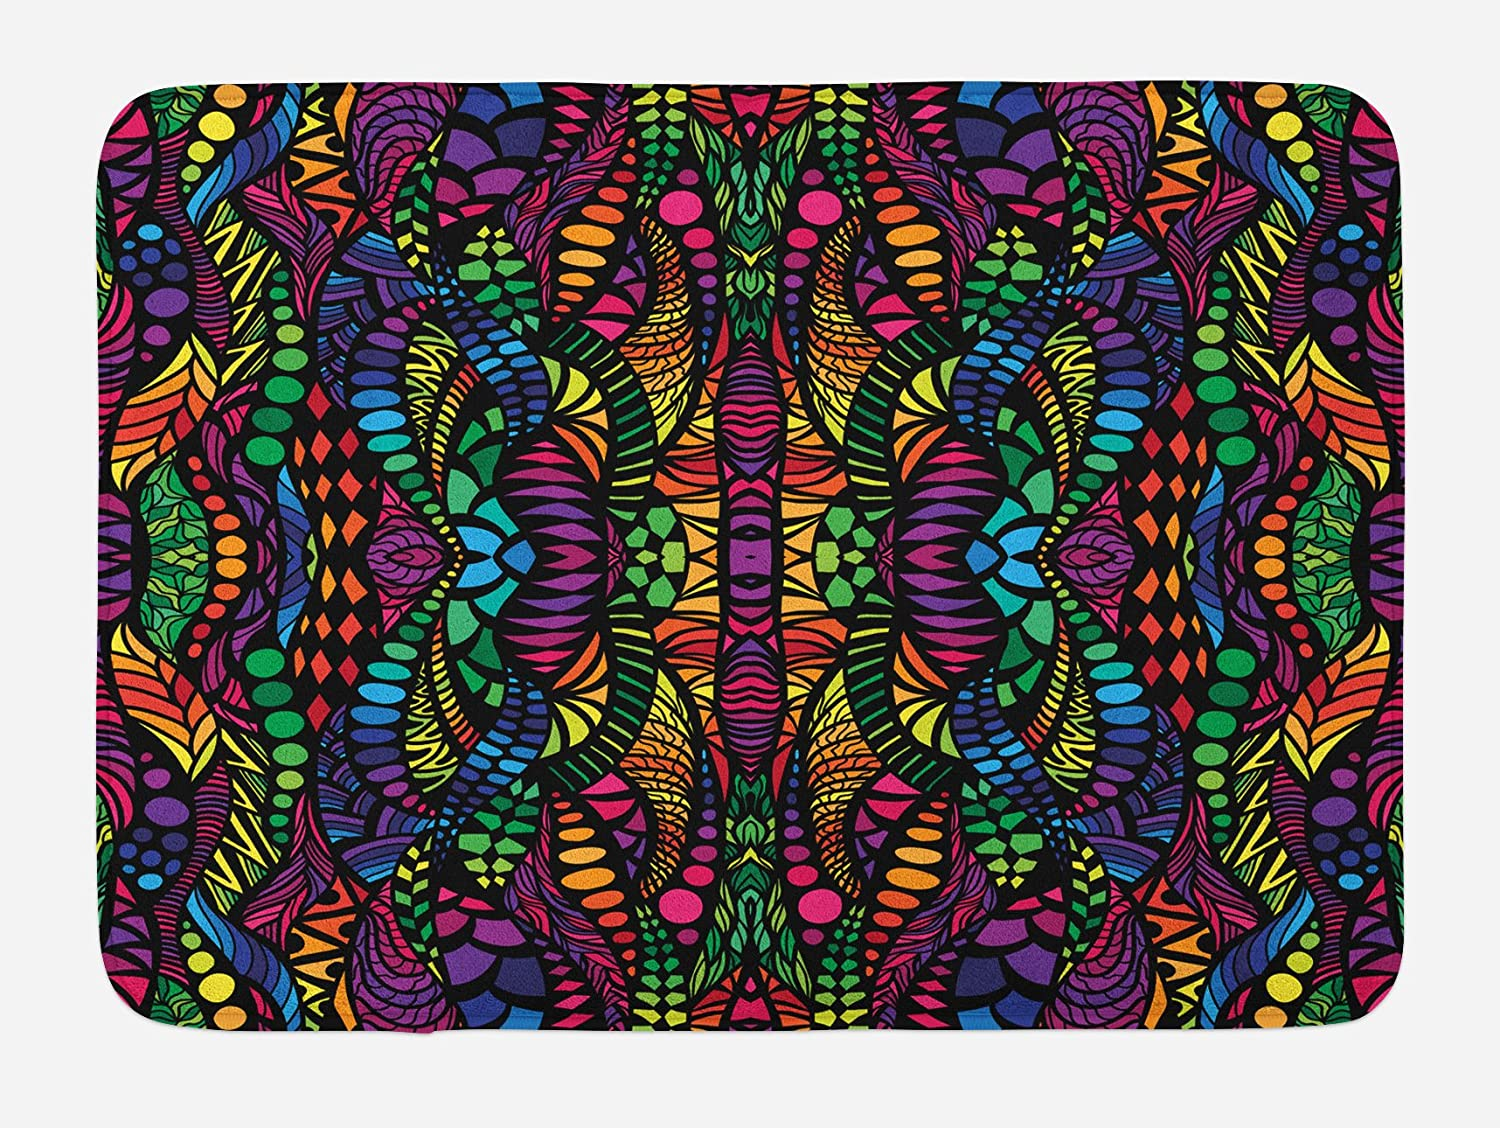 Lunarable Abstract Bath Mat, Trippy Contrast Tones Featured Fractal Forms Creative Colorful Effects Graphic Art, Plush Bathroom Decor Mat with Non Slip Backing, 29.5